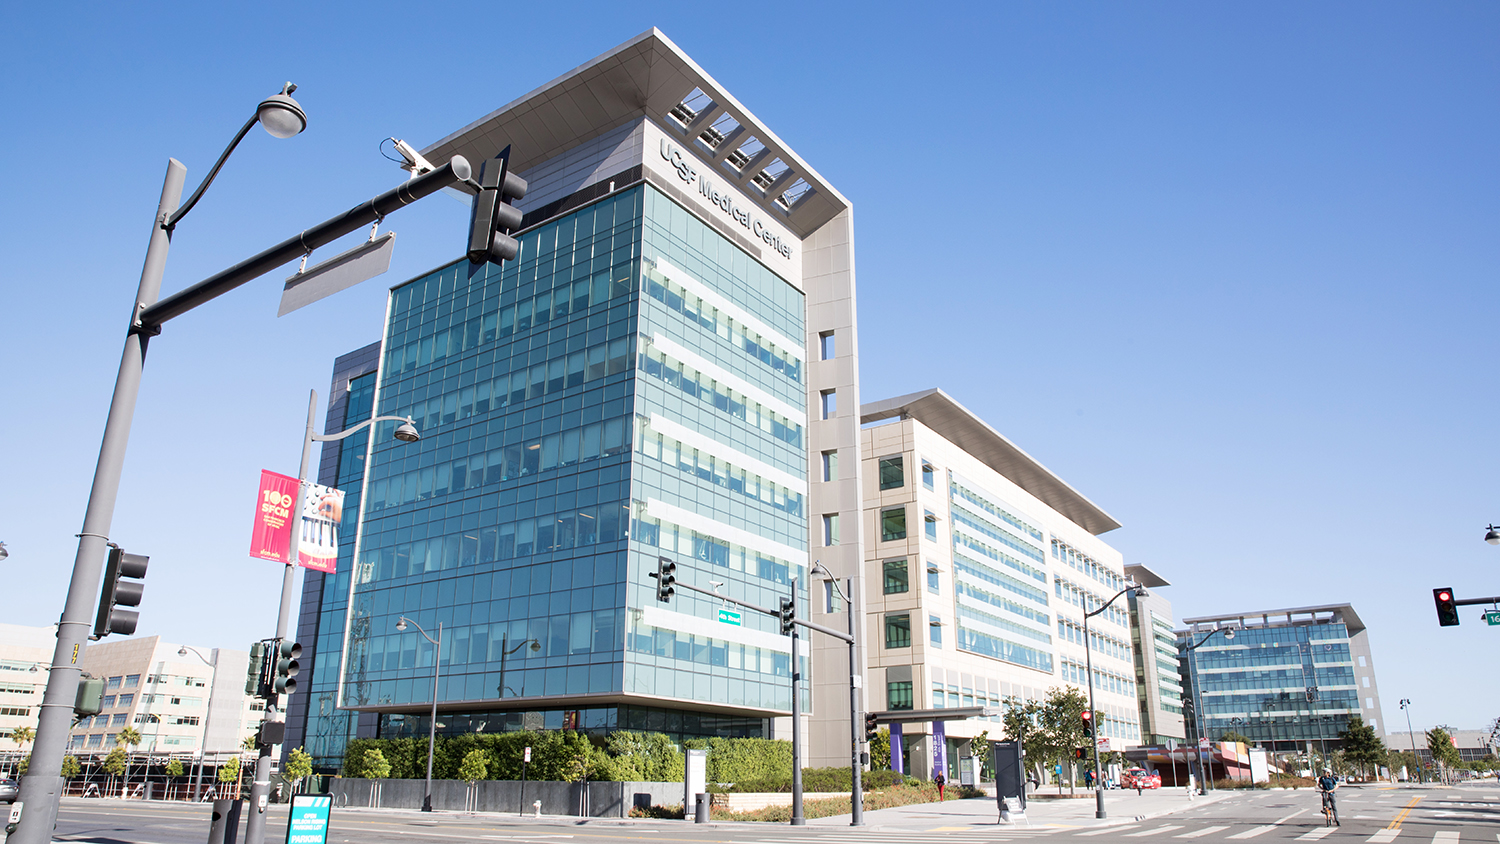 ucsf_science_building_1-1